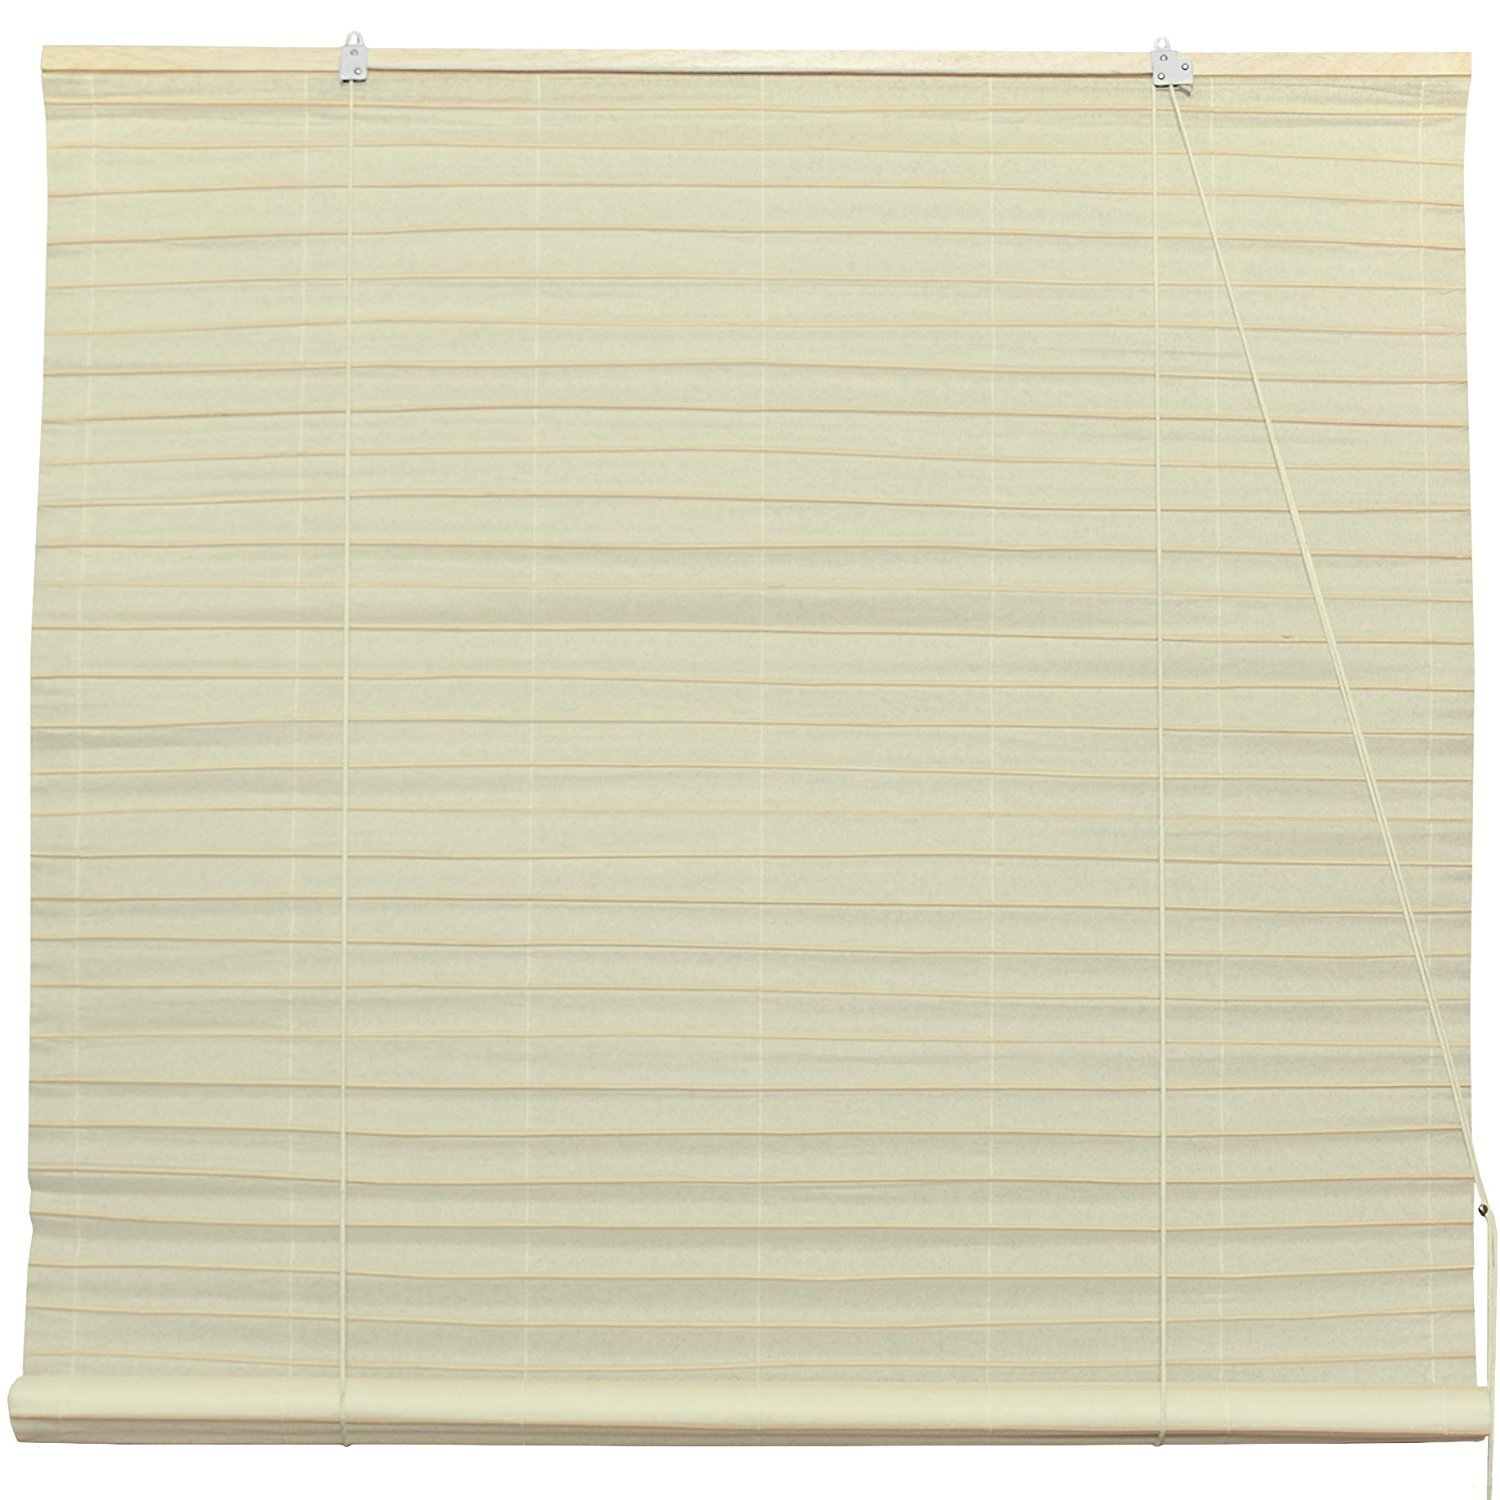 Oriental Furniture Shoji Paper Roll Up Blinds - Cream - (48 in. x 72 in.)